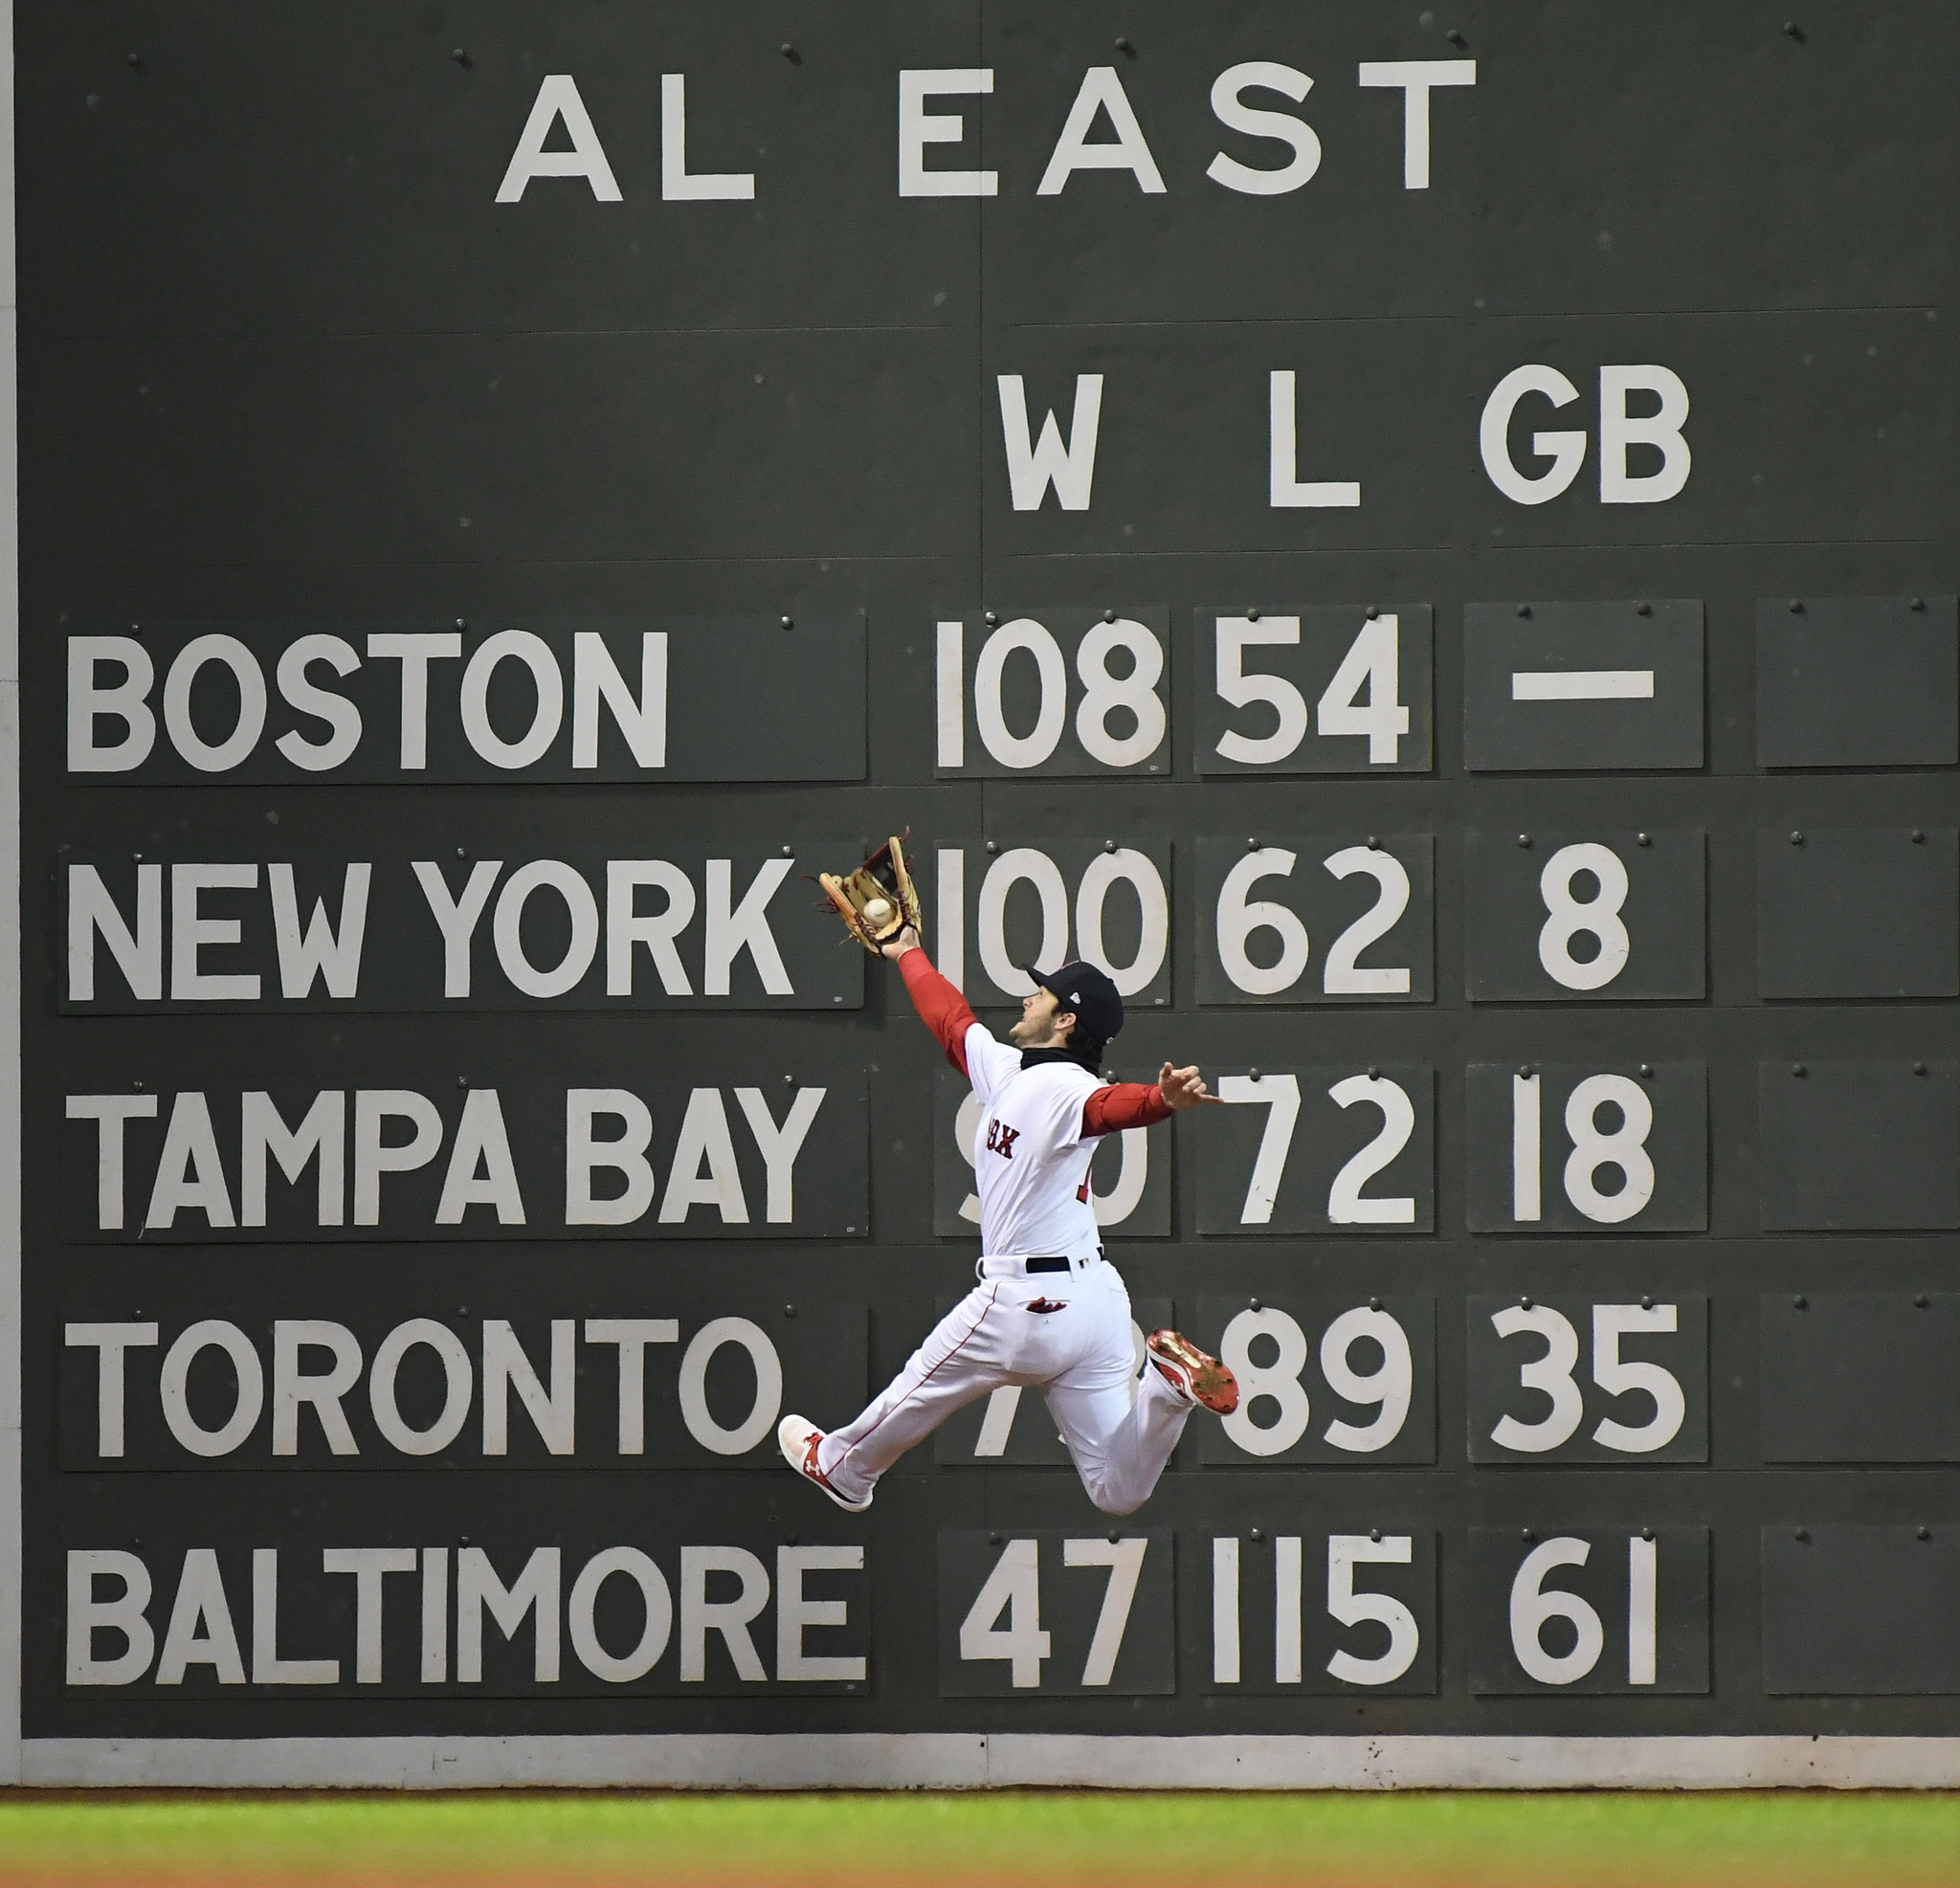 BOSTON, MA WEDNESDAY, OCTOBER 24, 2018 Red Sox Andrew Benintendi makes a leaping catch hit by Dodg